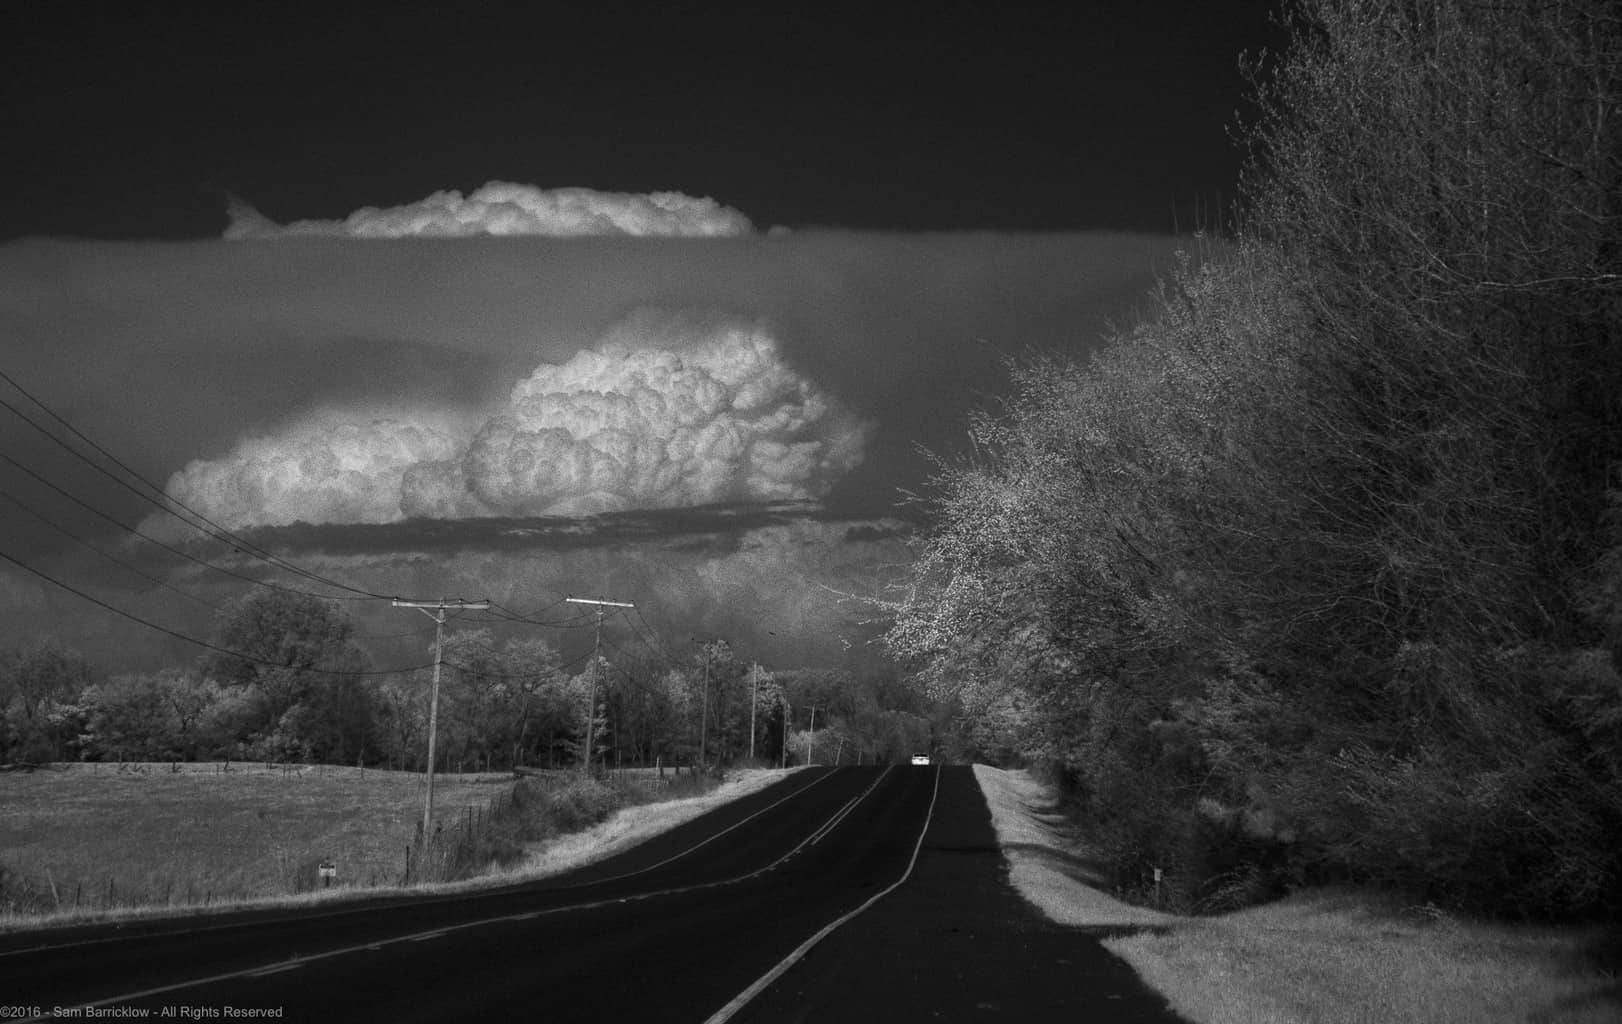 The Little Rock tornado warned supercell viewed from Emmet, Arkansas on Sunday, March 13, 2016 at 5:28 PM